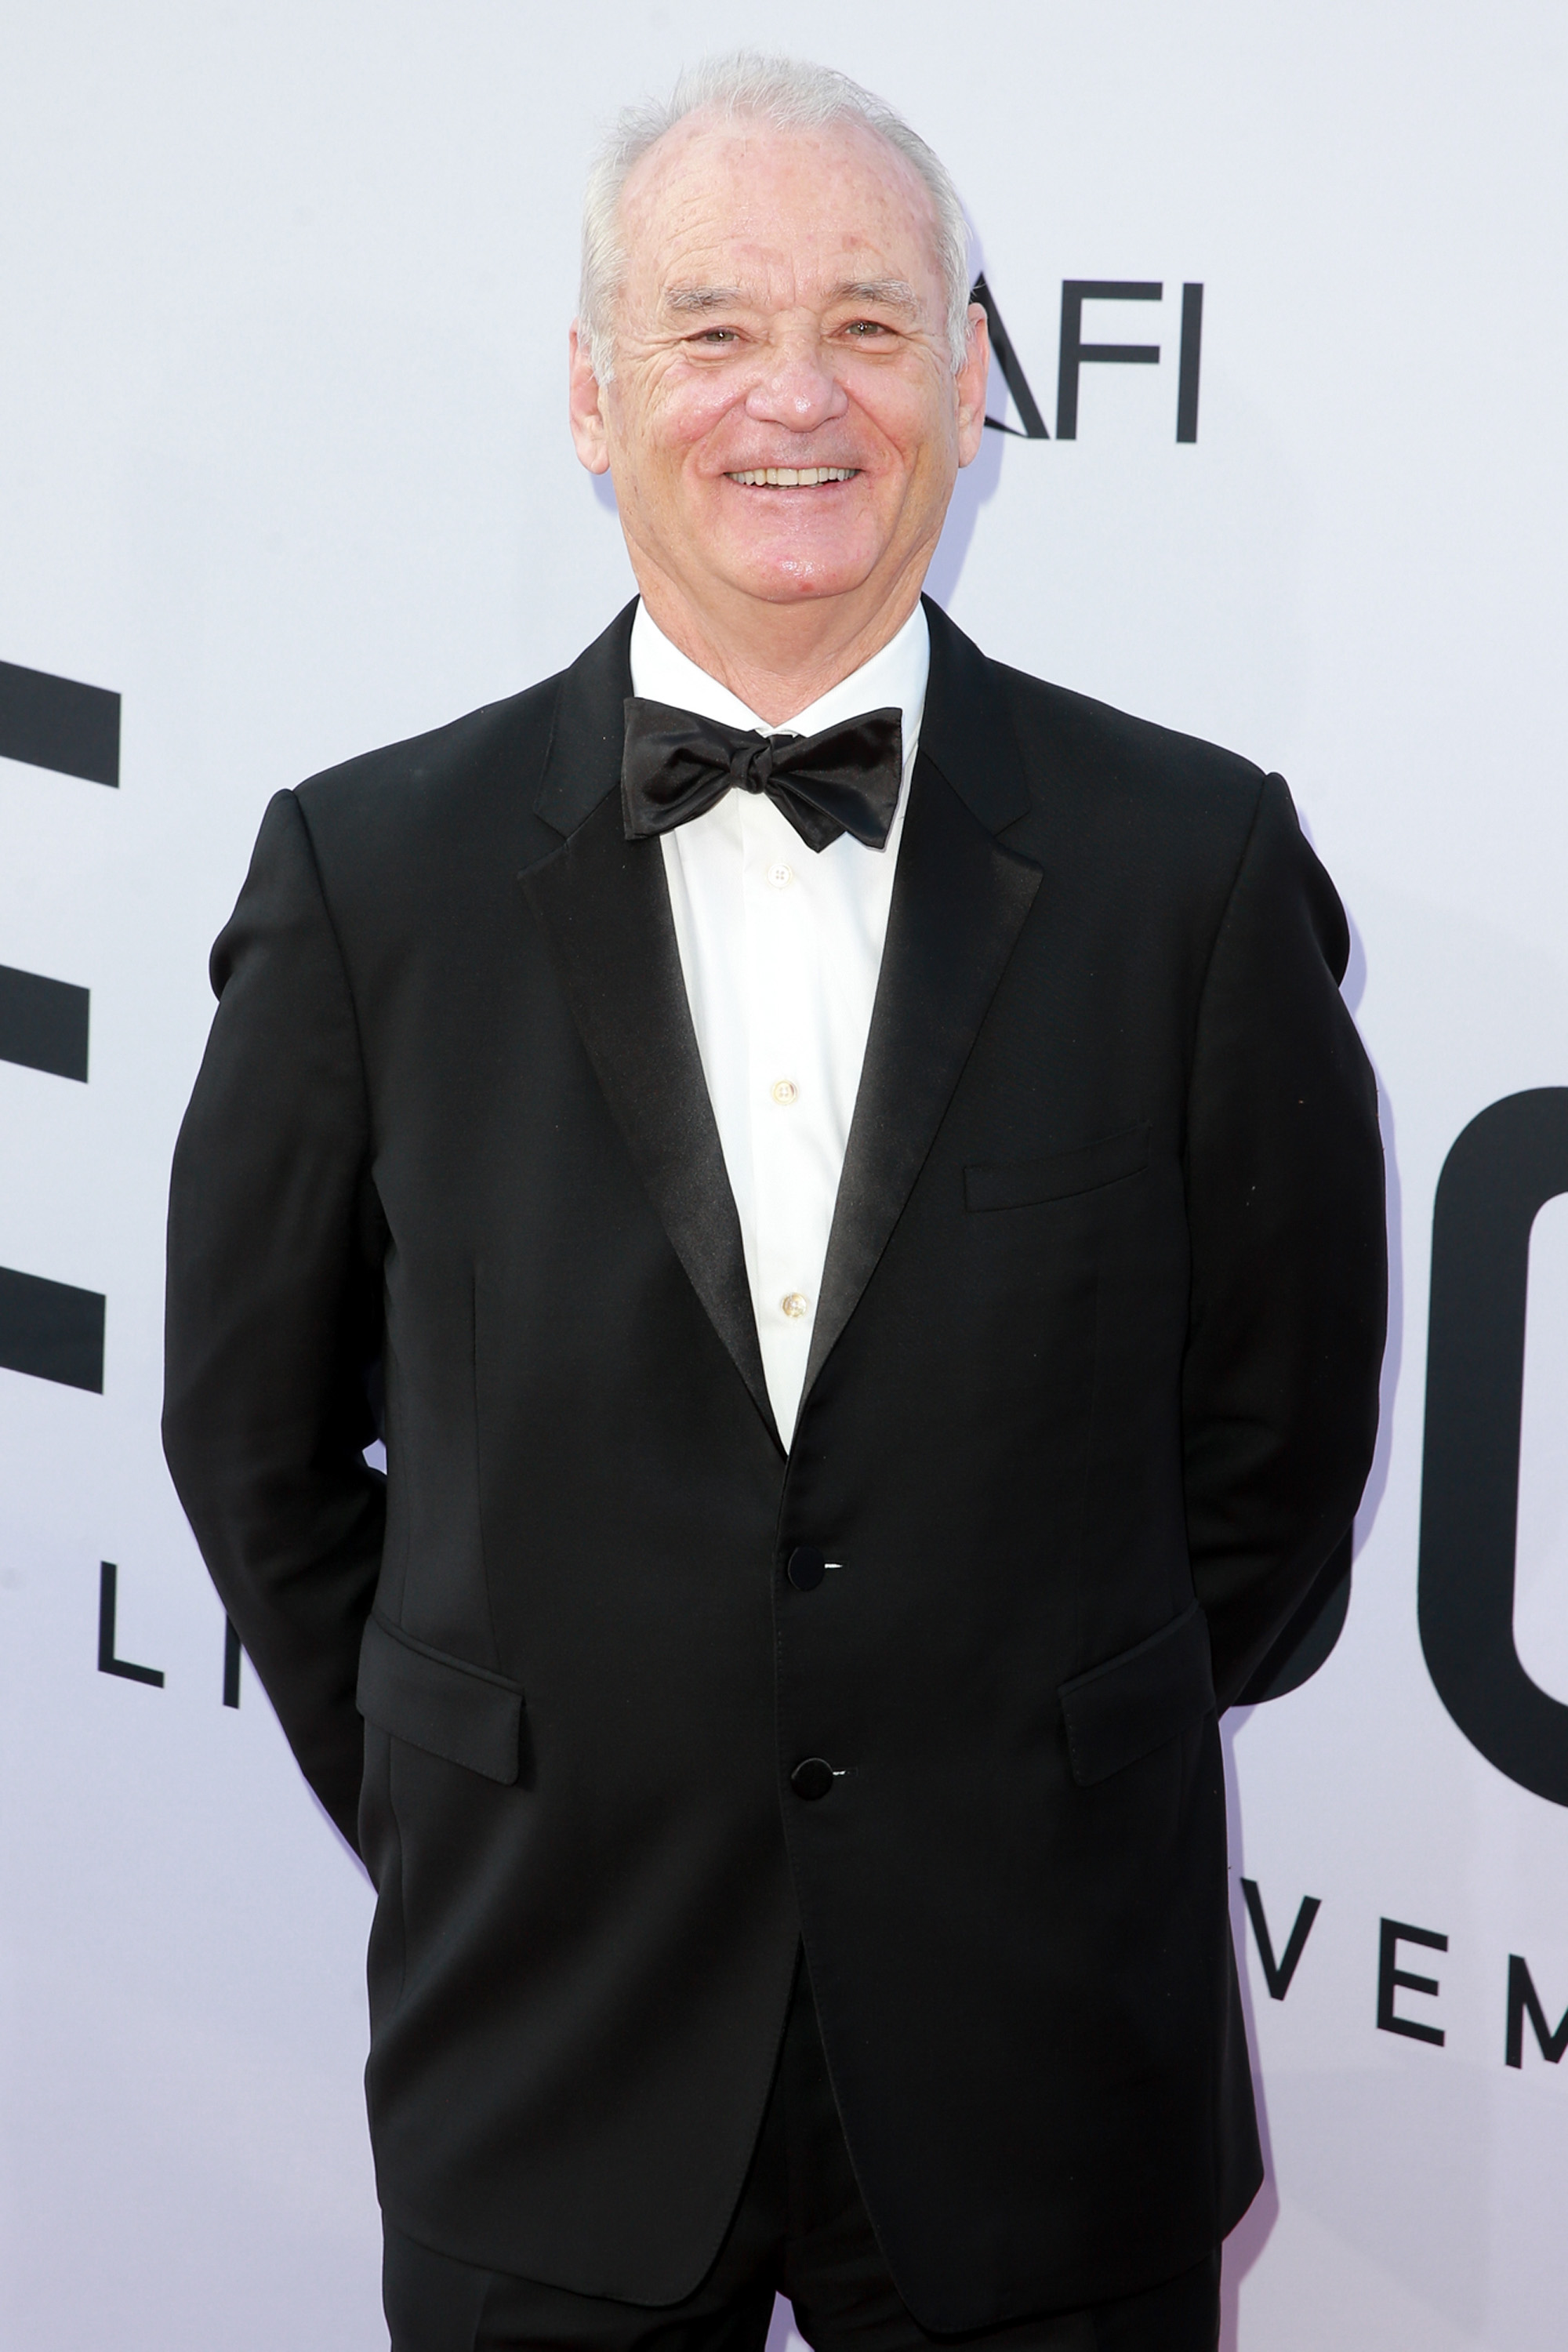 Bill Murray was accused of assaulting a photographer (Source: Rich Fury/Getty Images)